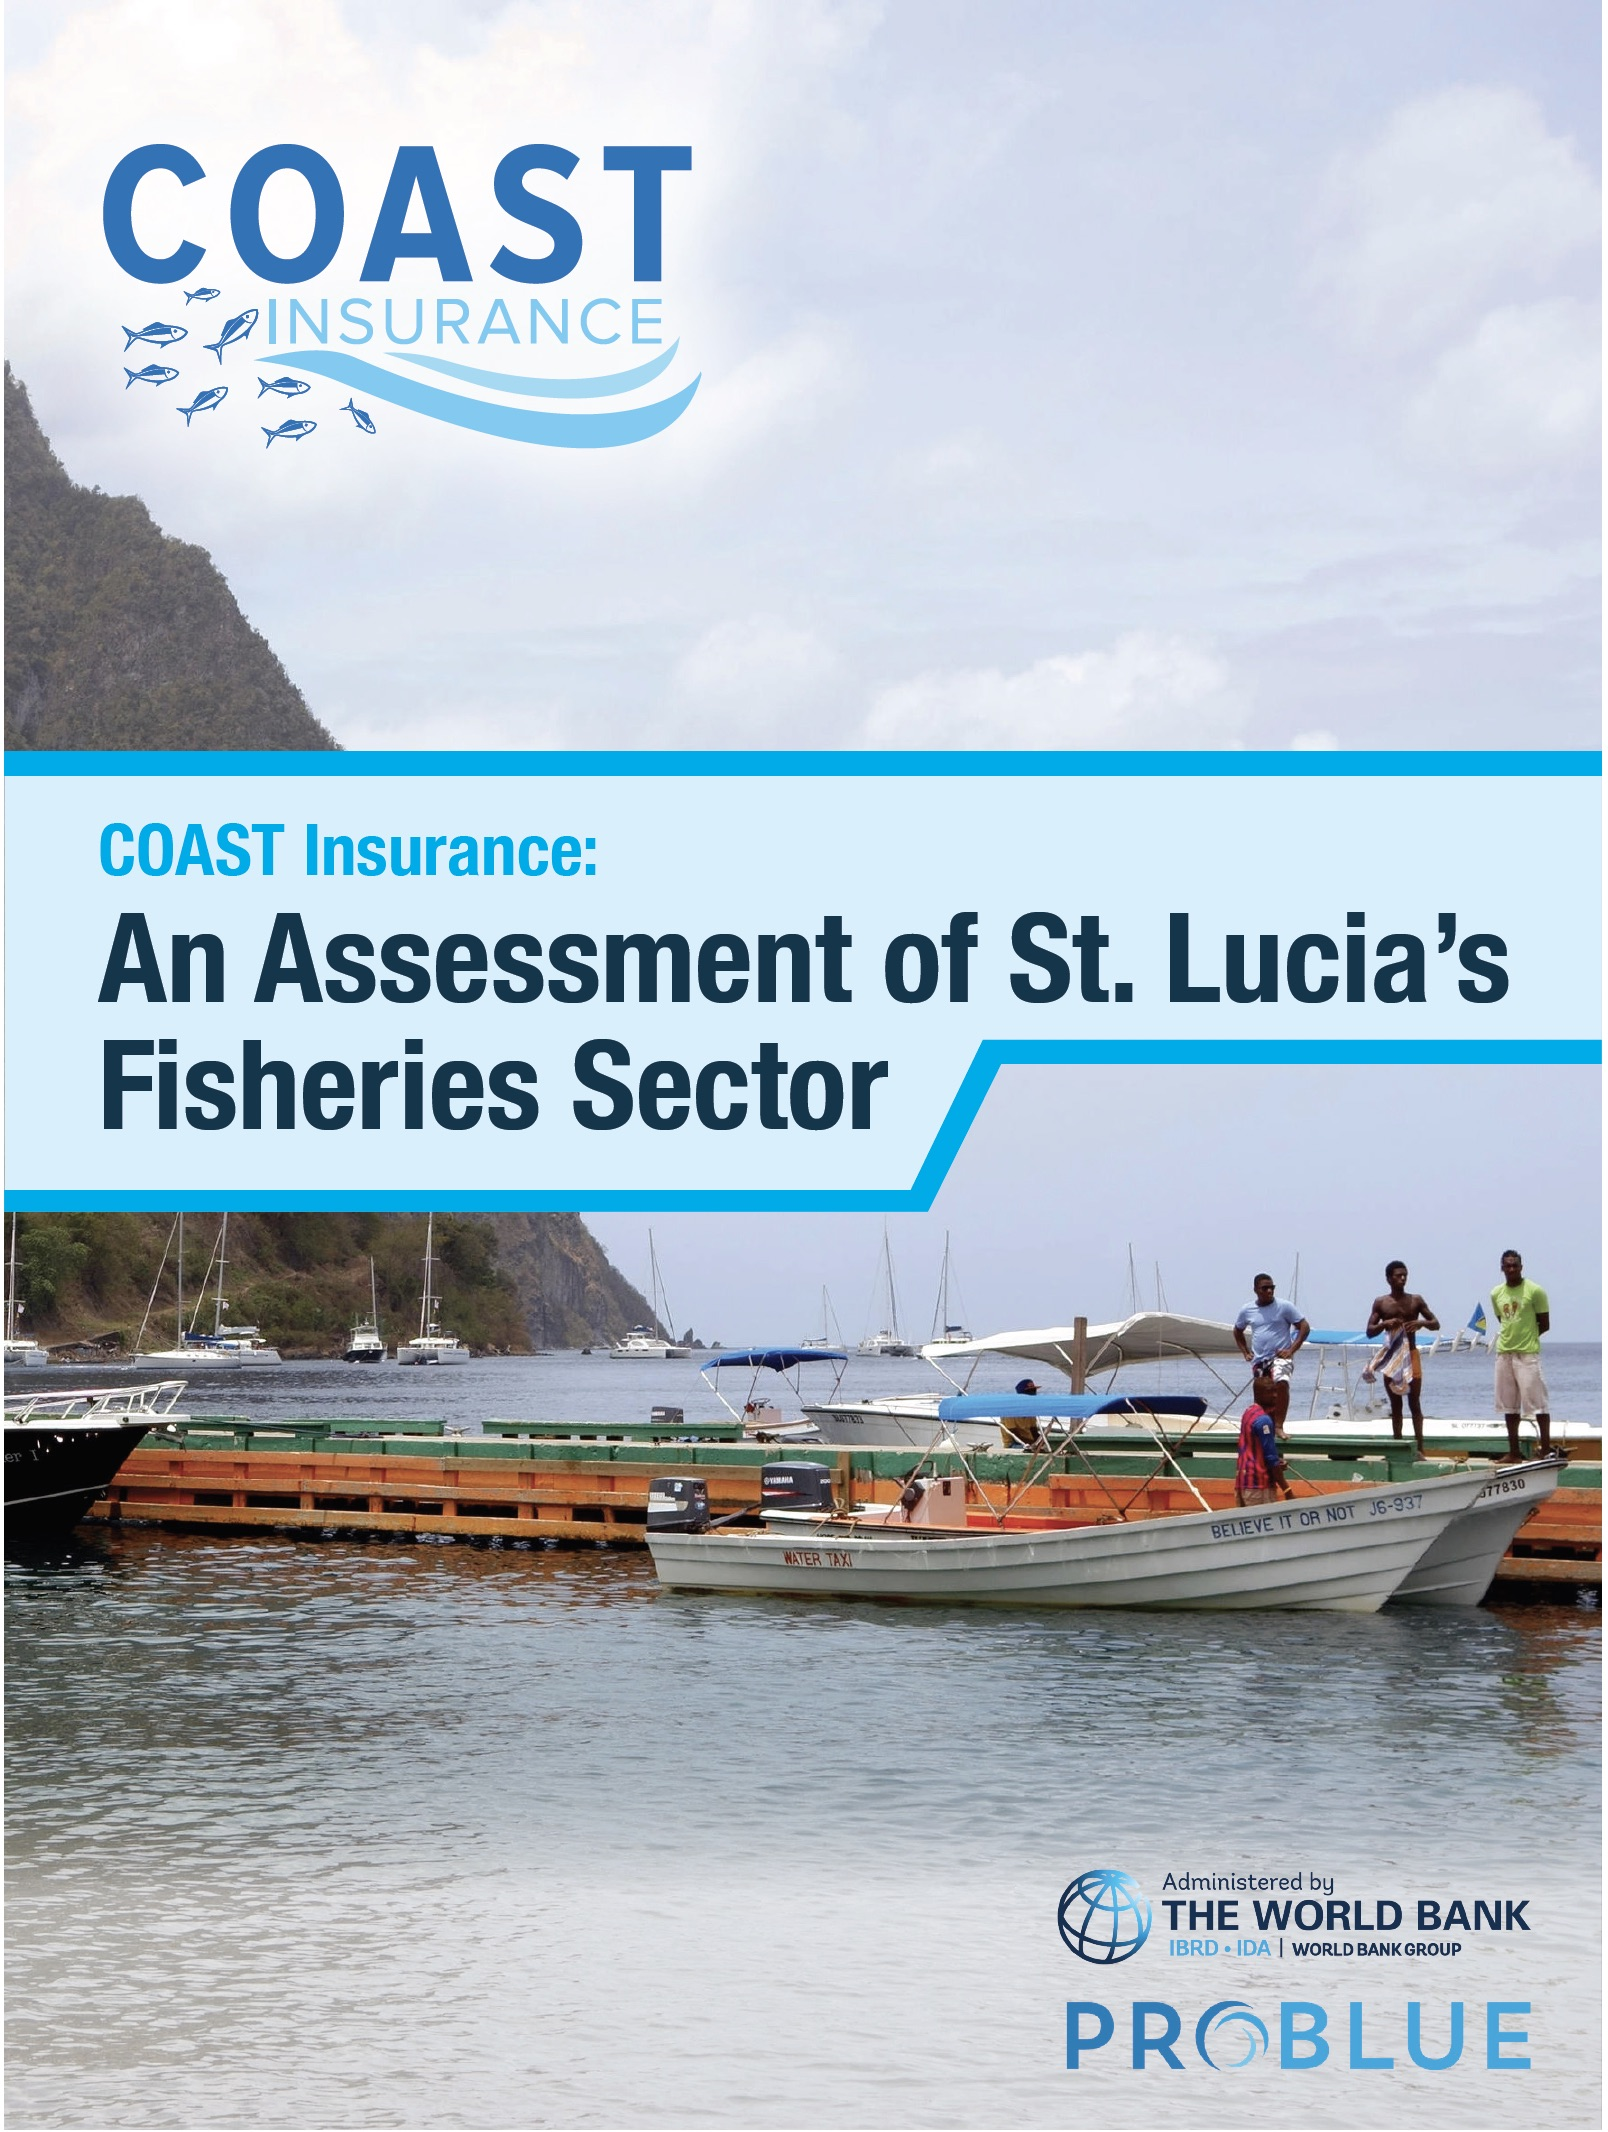 COAST Insurance: An Assessment of St. Lucia's Fisheries Sector